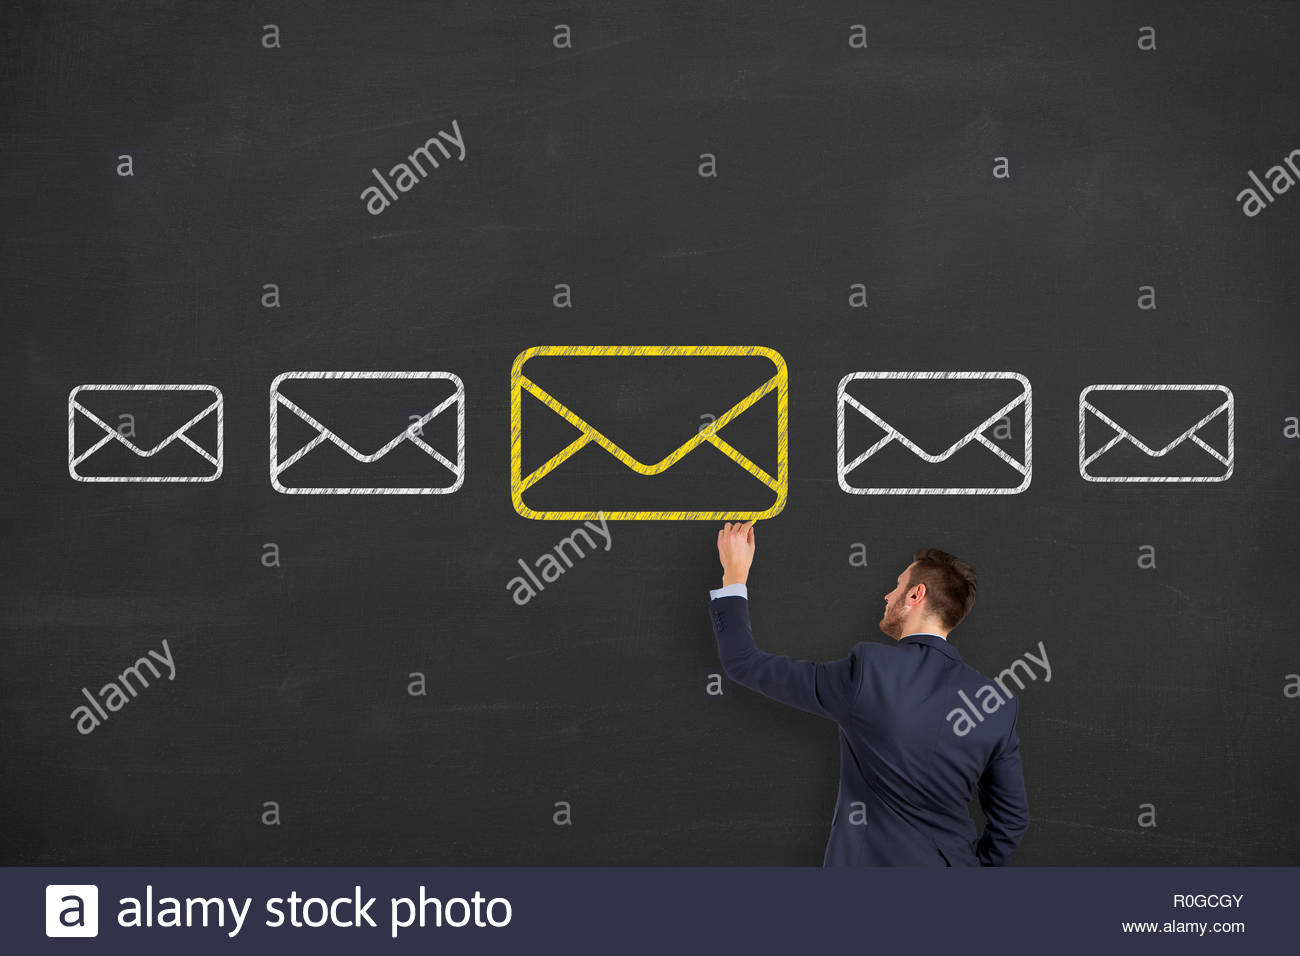 Email marketing newsletter and bulk mail concepts on blackboard - Stock Image